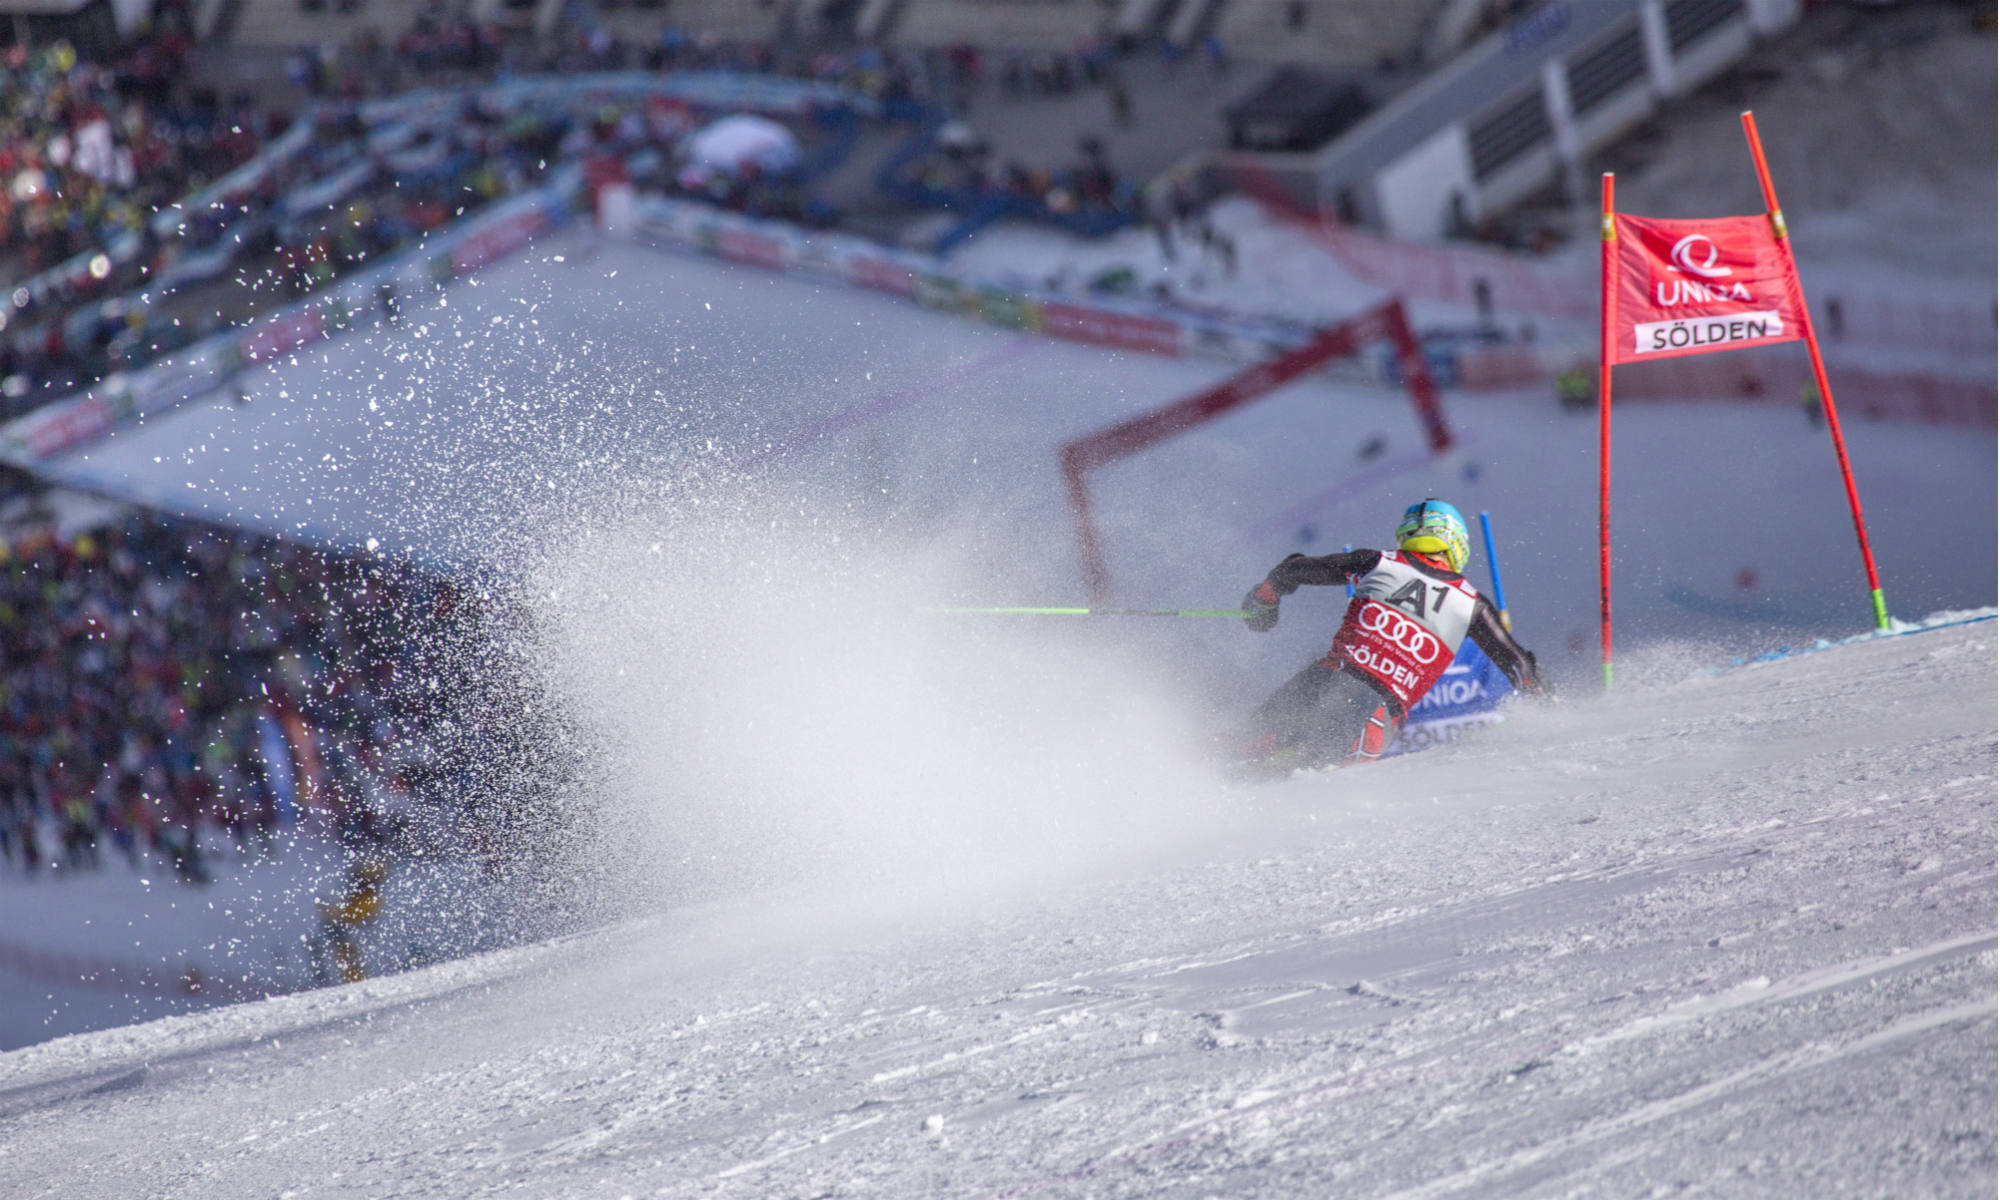 An alpine skier skiing down a slalom slope.